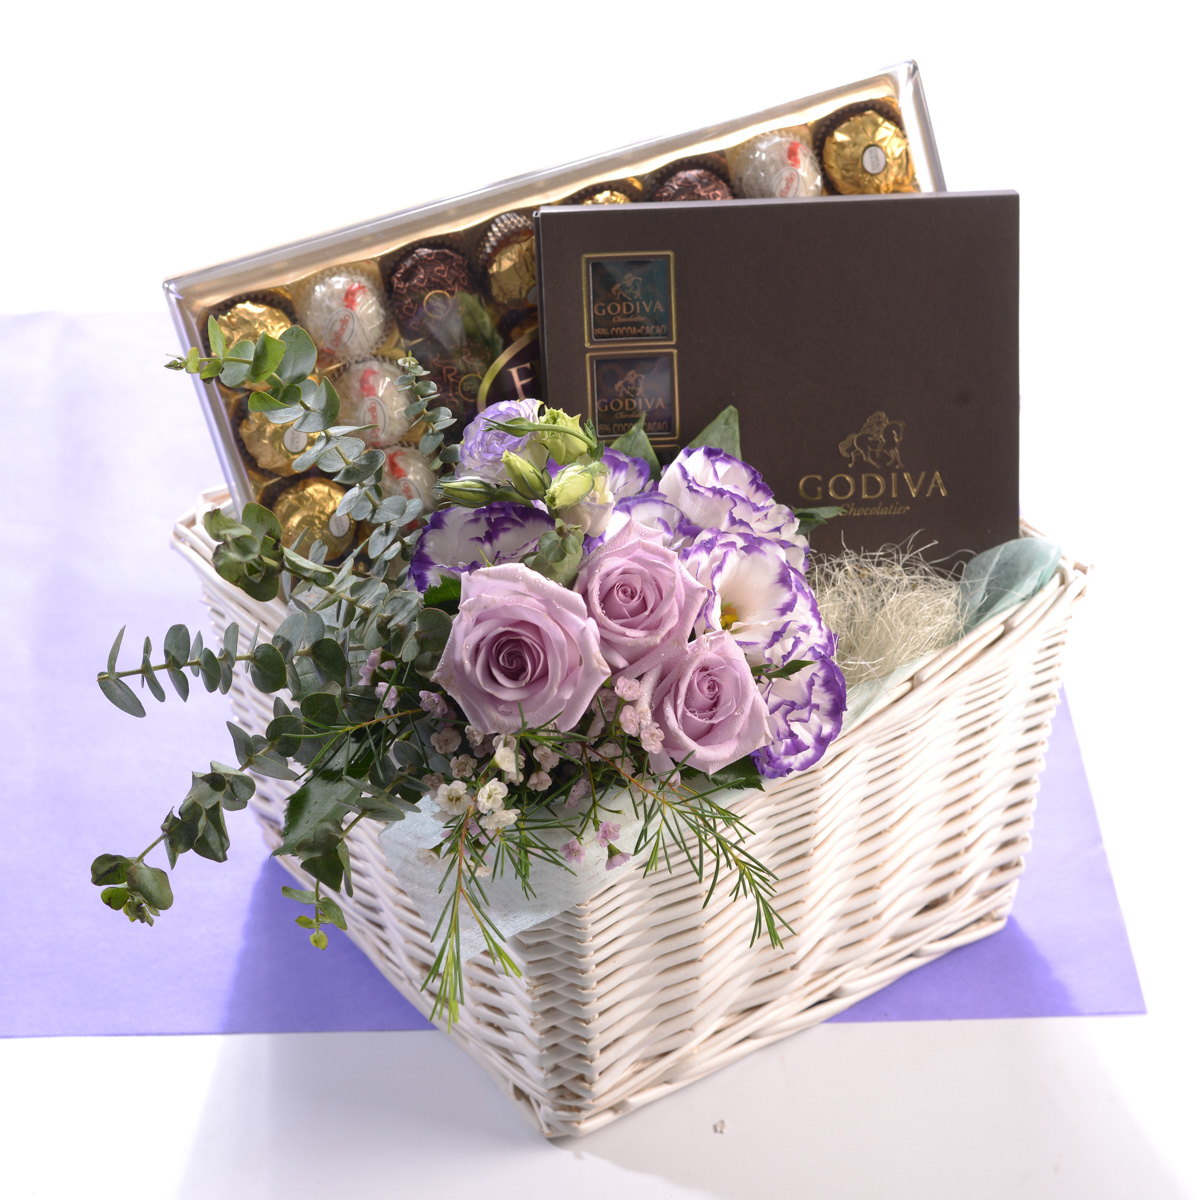 Chocolates Duo Ferrero Rocher T15 Collection & Godiva Chocolate Carre Collection | Birthday Gifts | Eska Creative Gifting